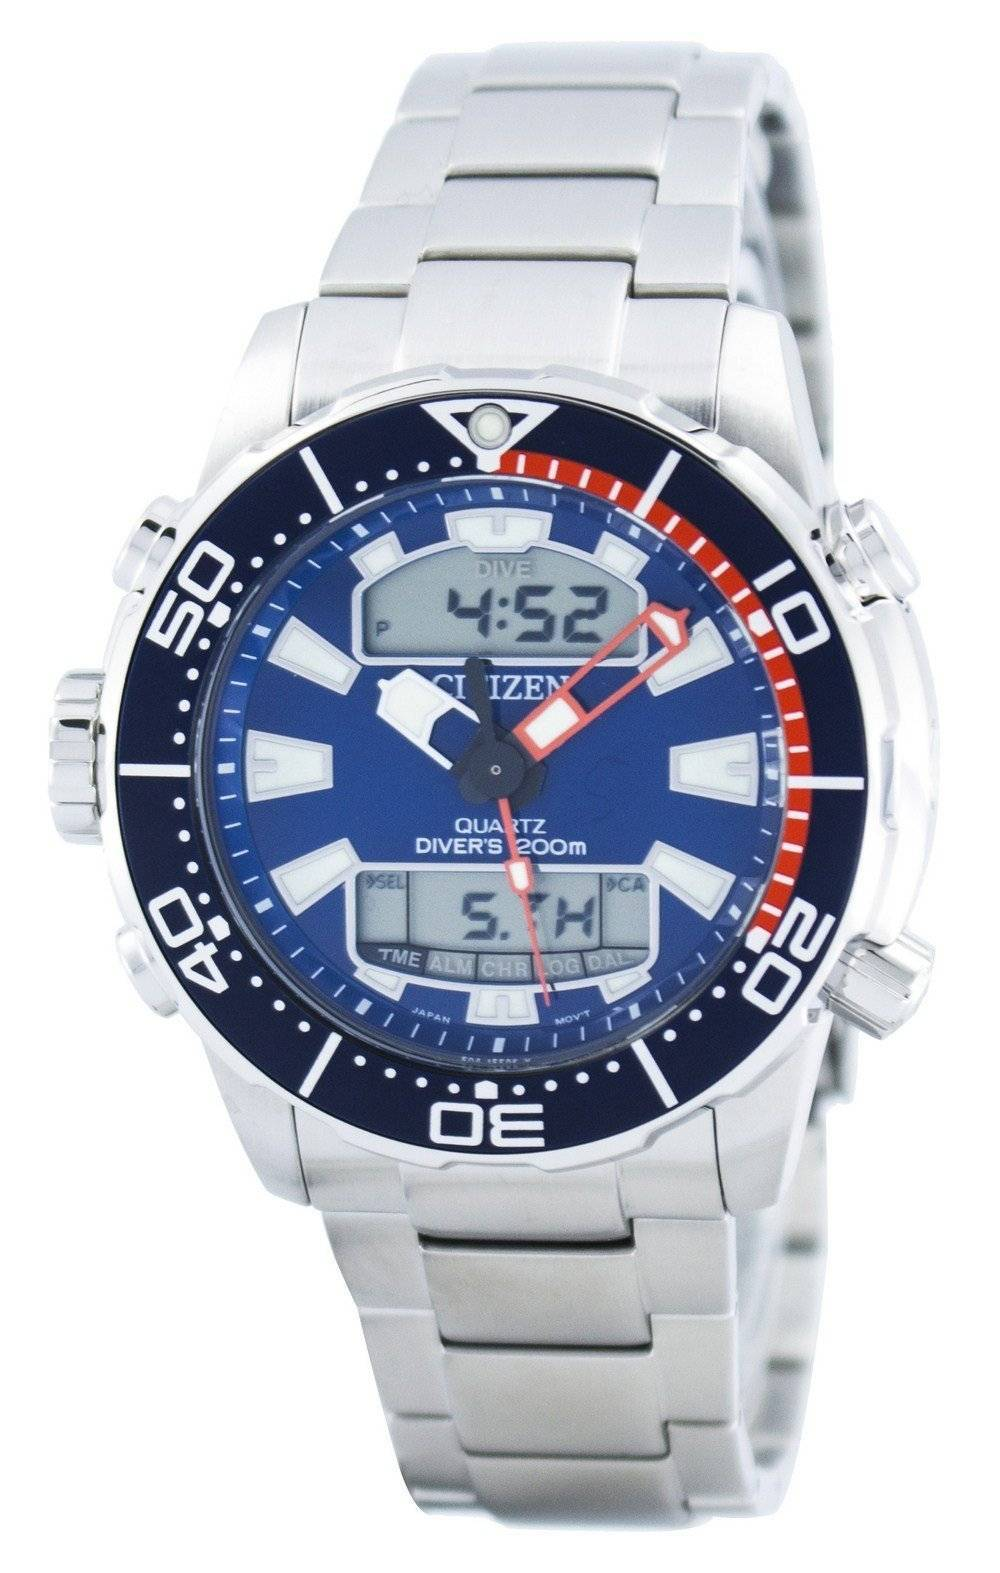 b096219d8db Citizen Aqualand Promaster Diver s 200M Analog Digital JP1099-81L Men s  Watch